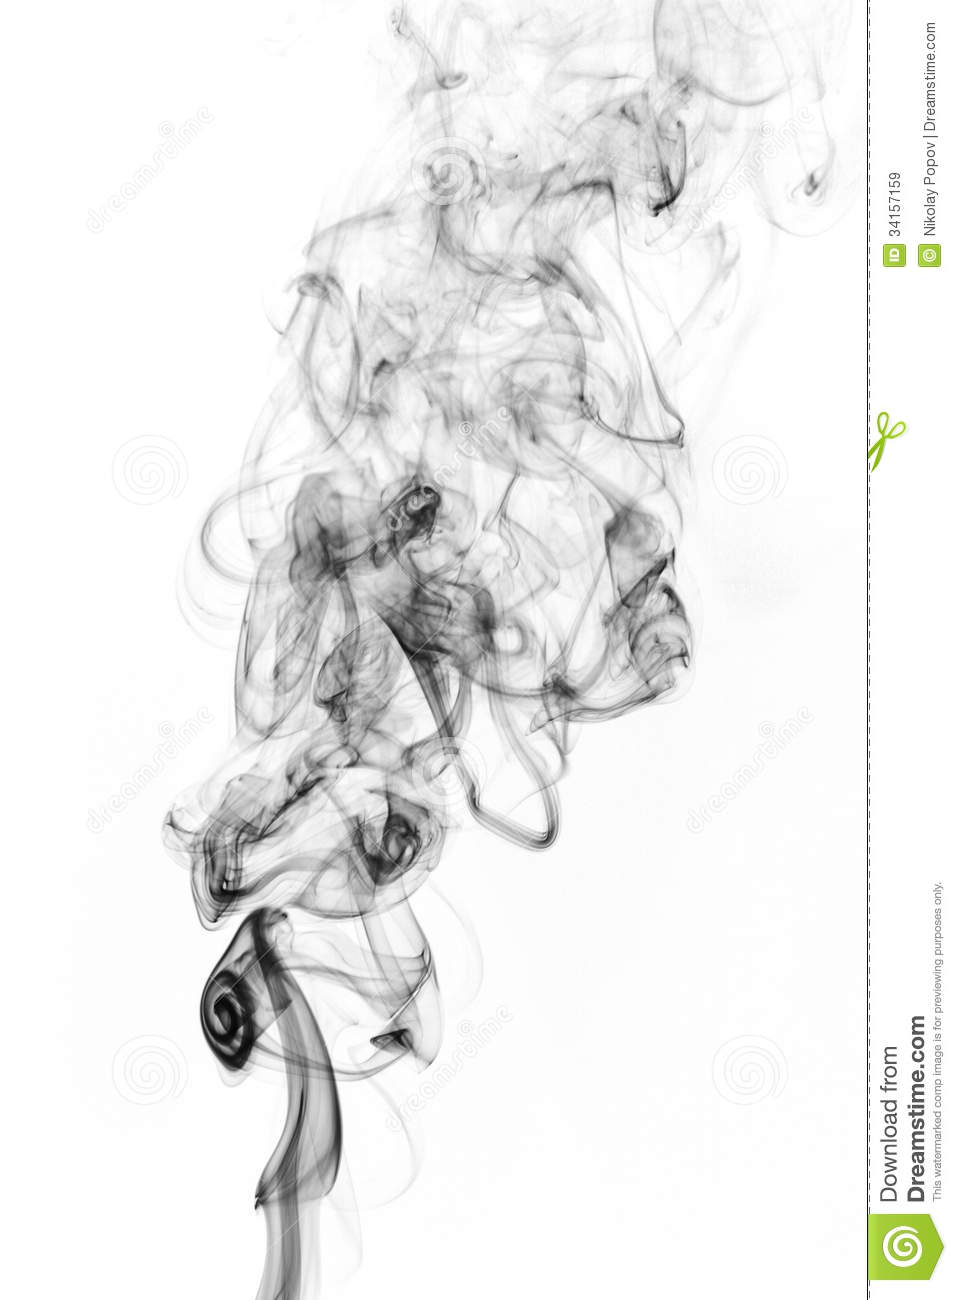 Soot. Black Smoke. Royalty Free Stock Images - Image: 34157159